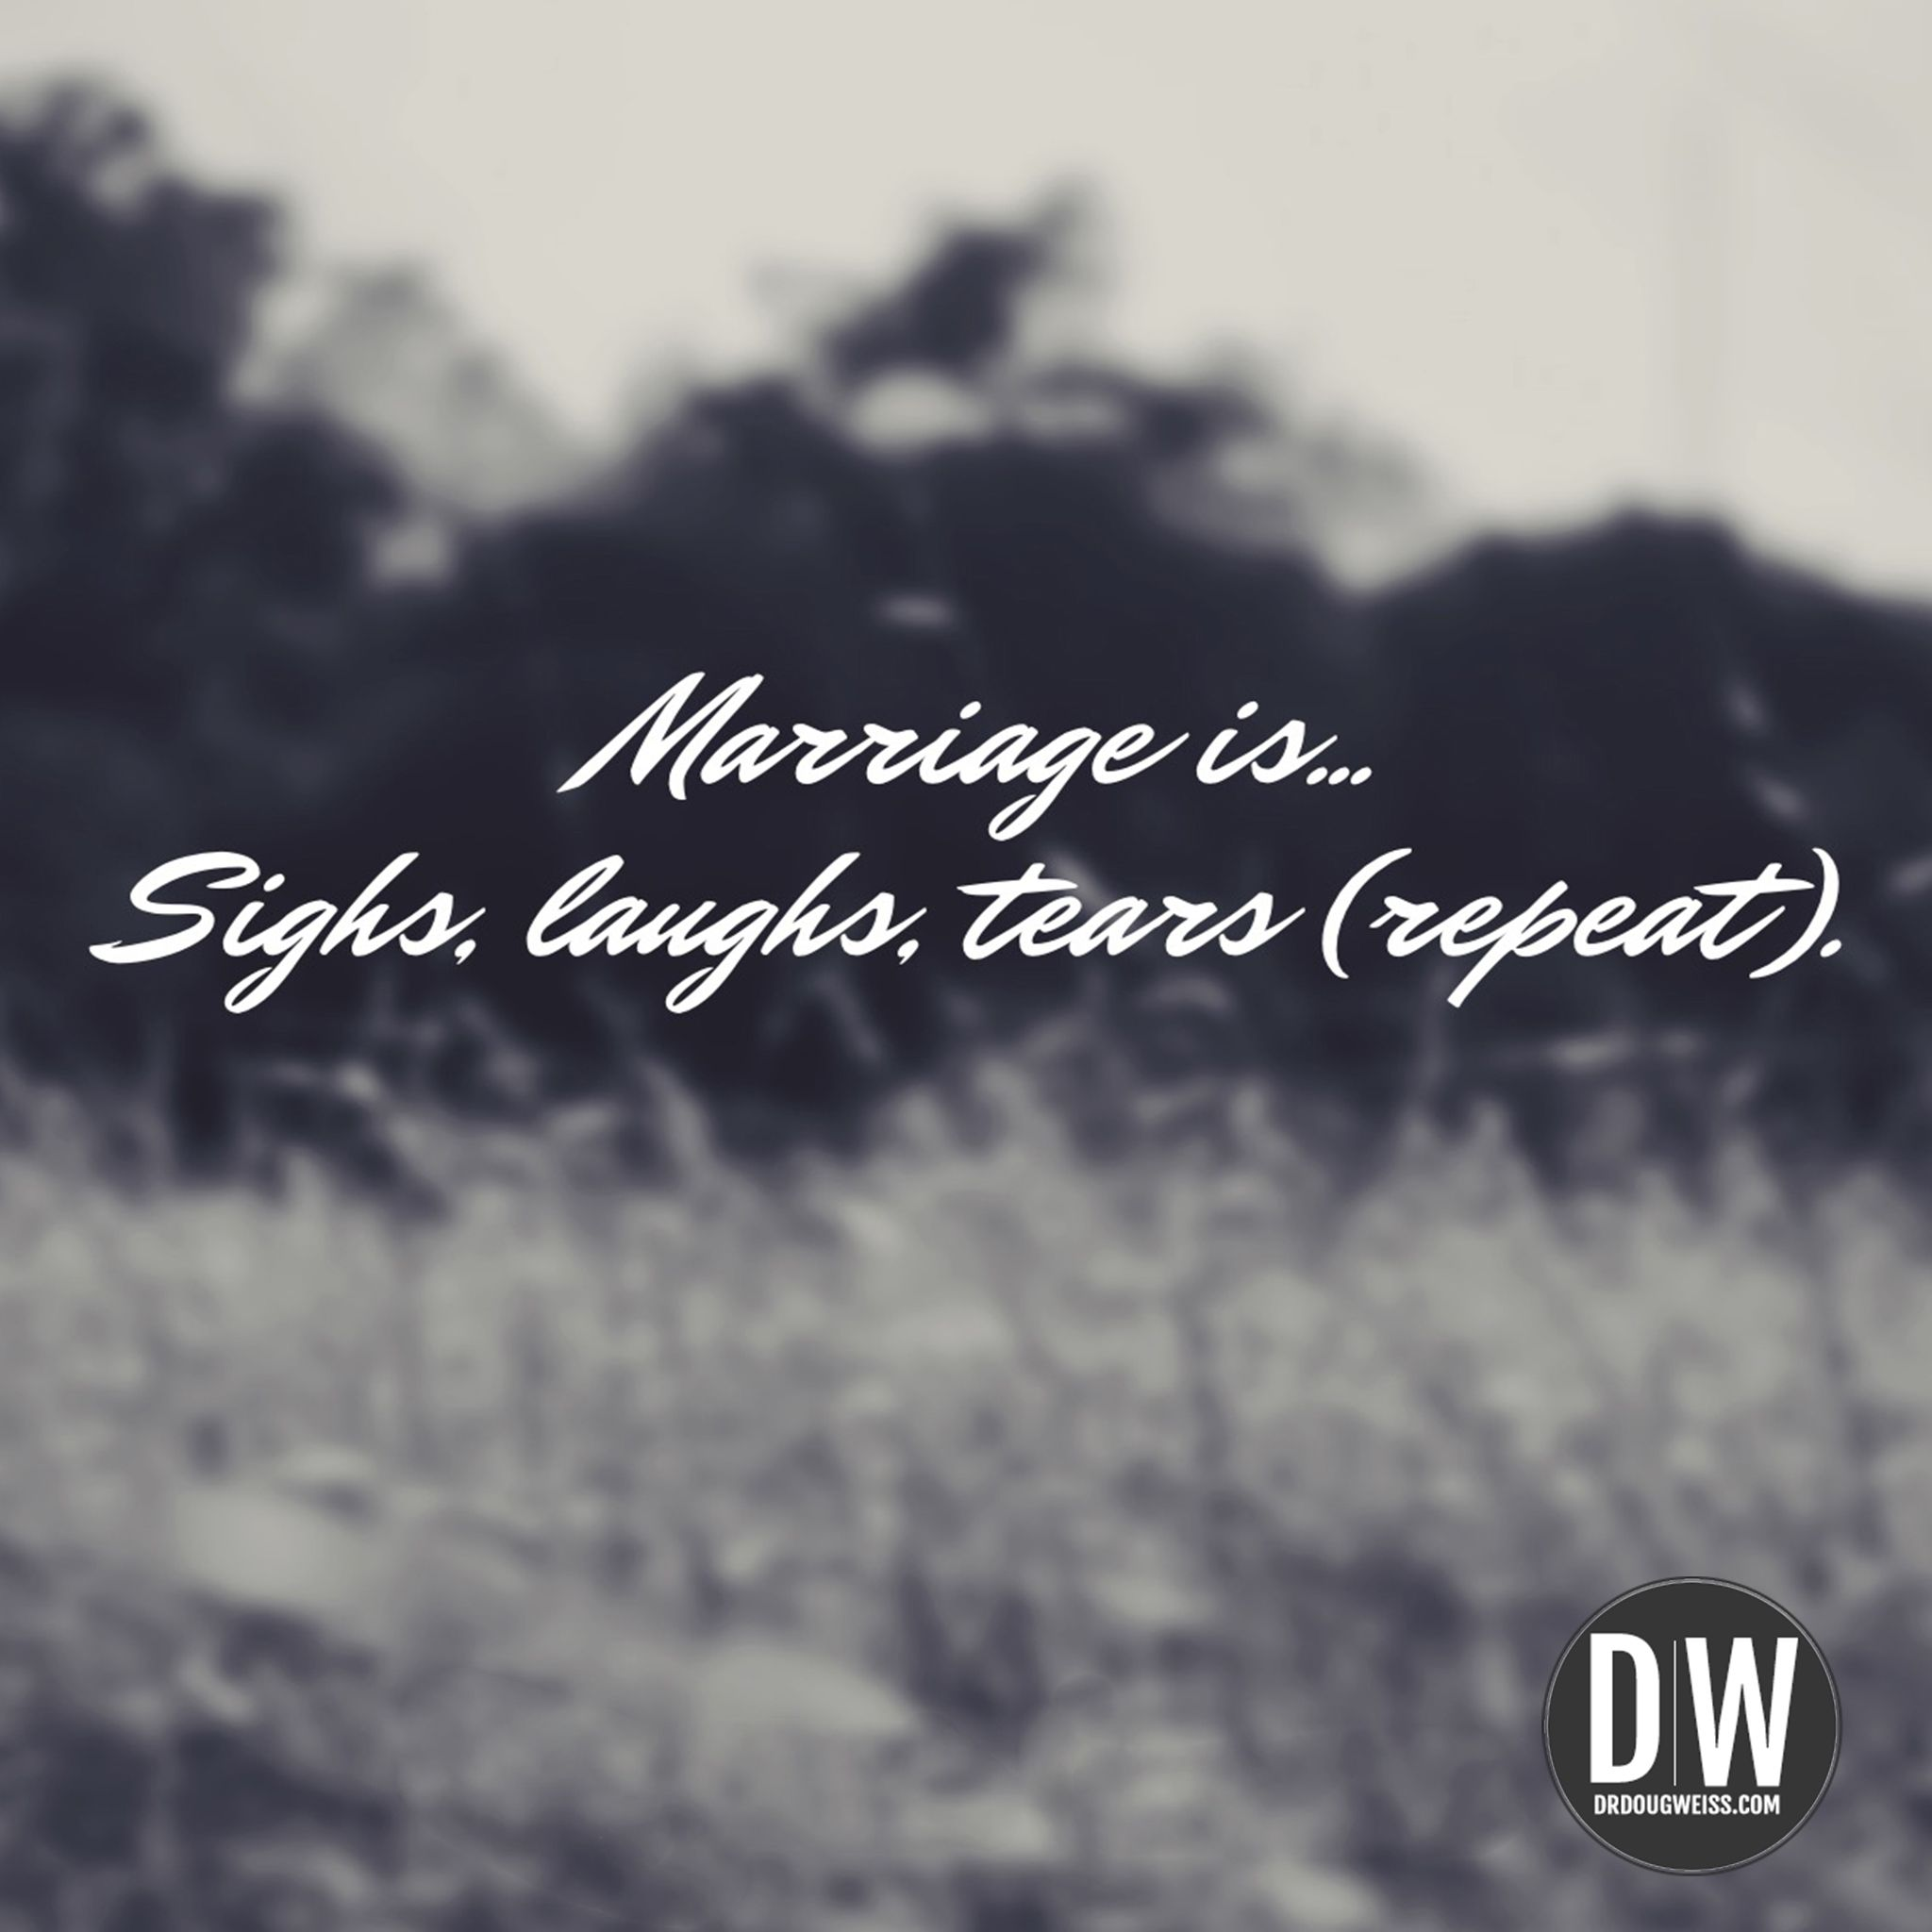 Marriage is... sighs, laughs, tears. (Repeat) marriage